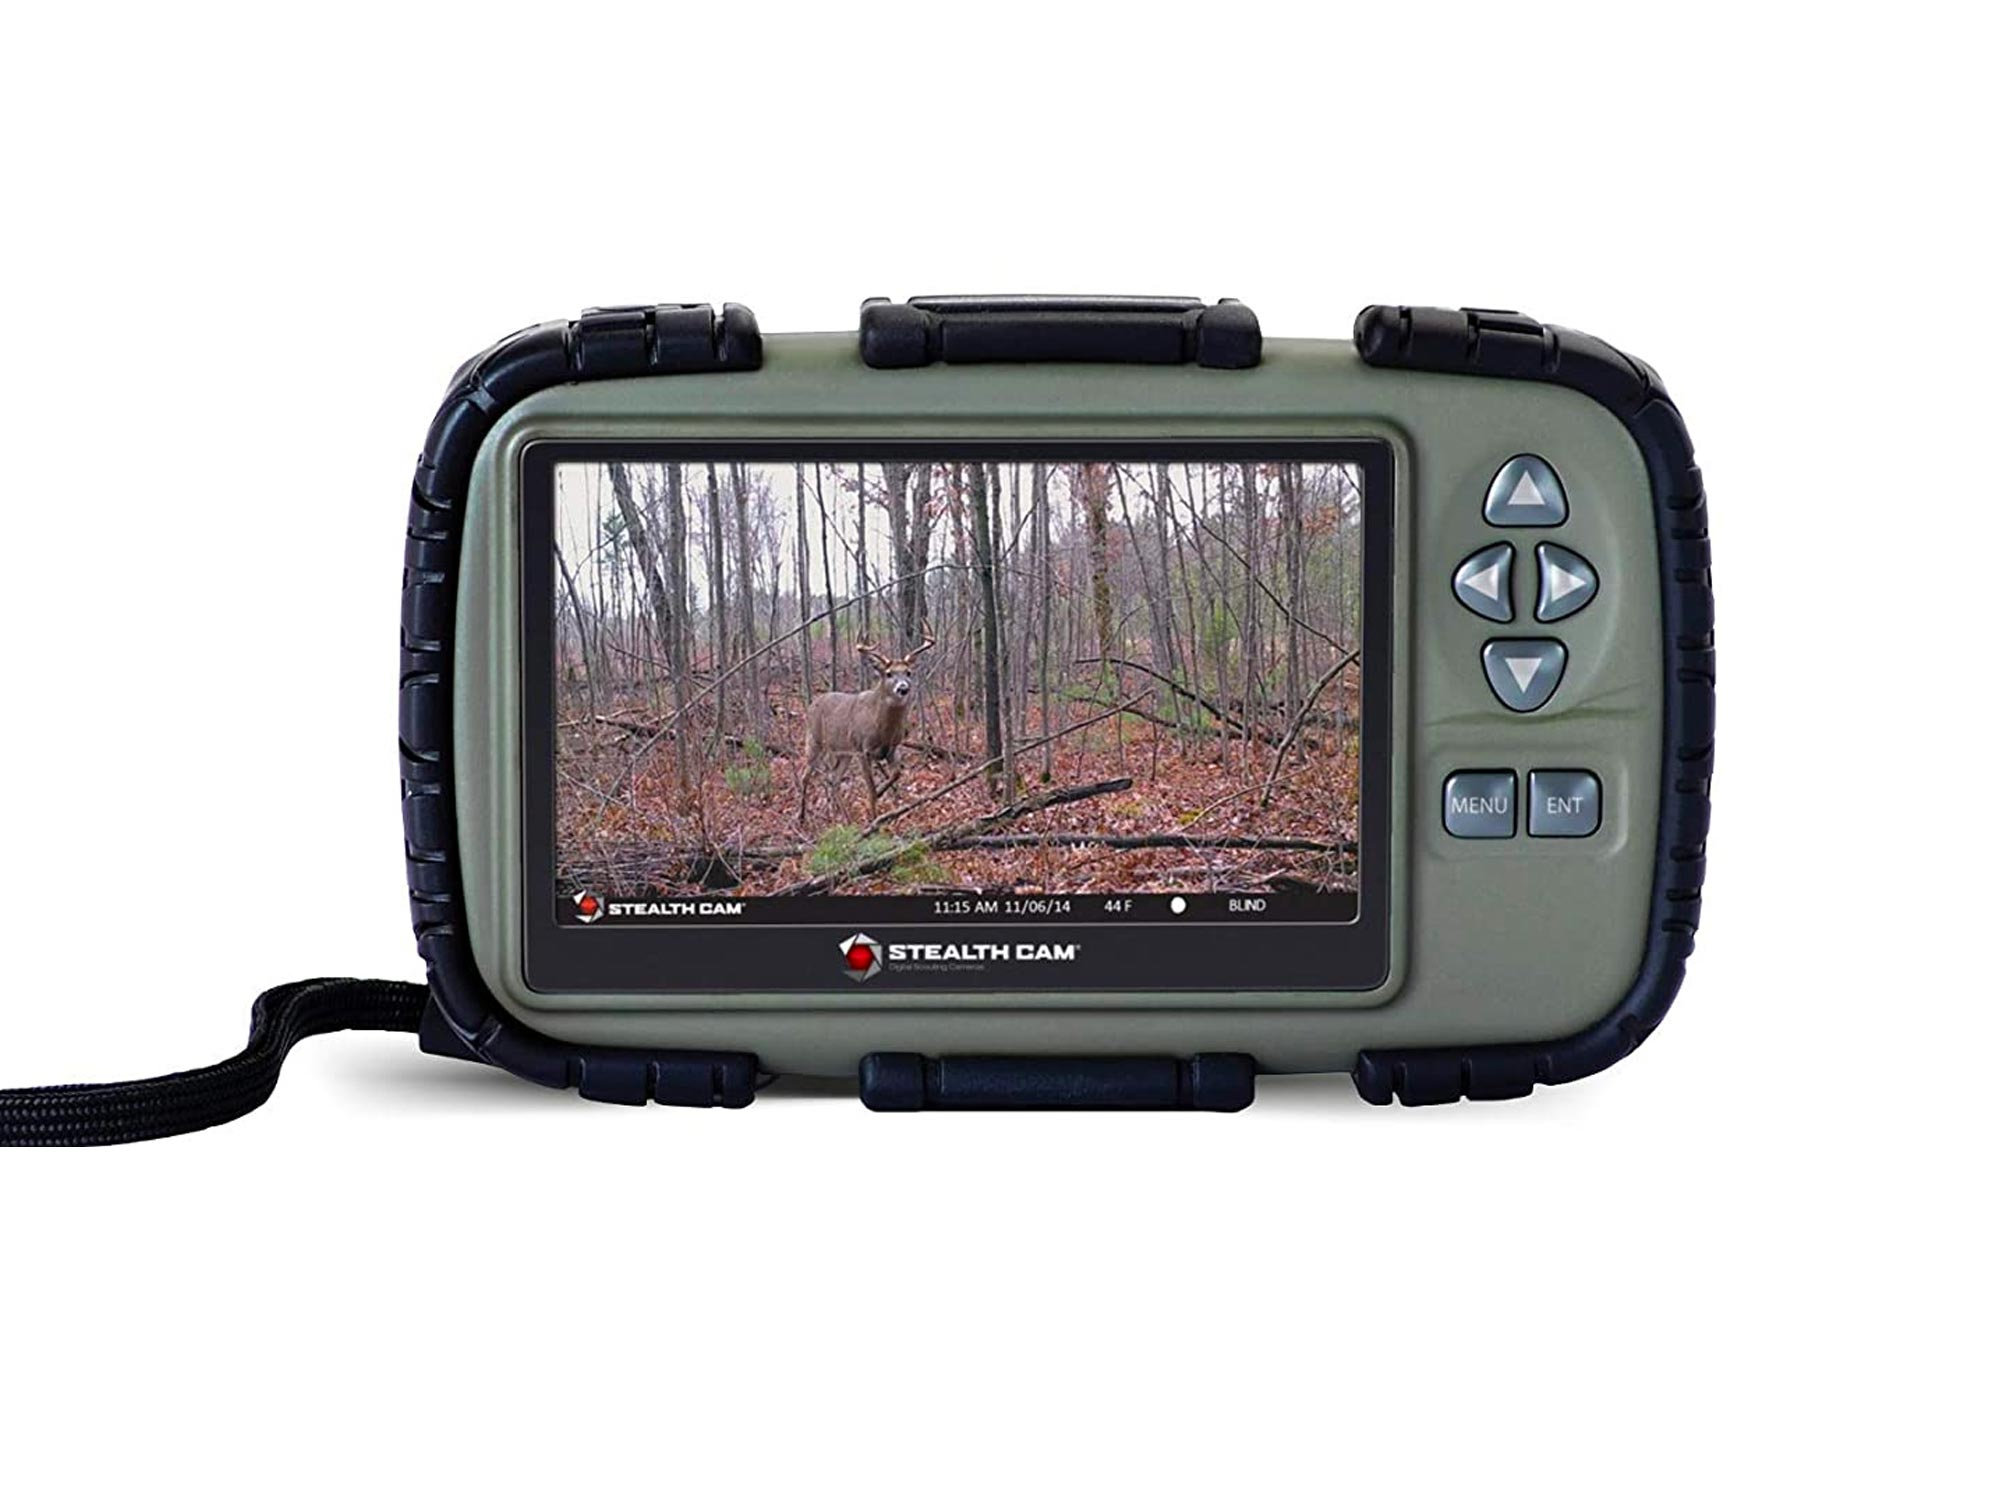 Stealth Cam SD Card Reader and Viewer with 4.3